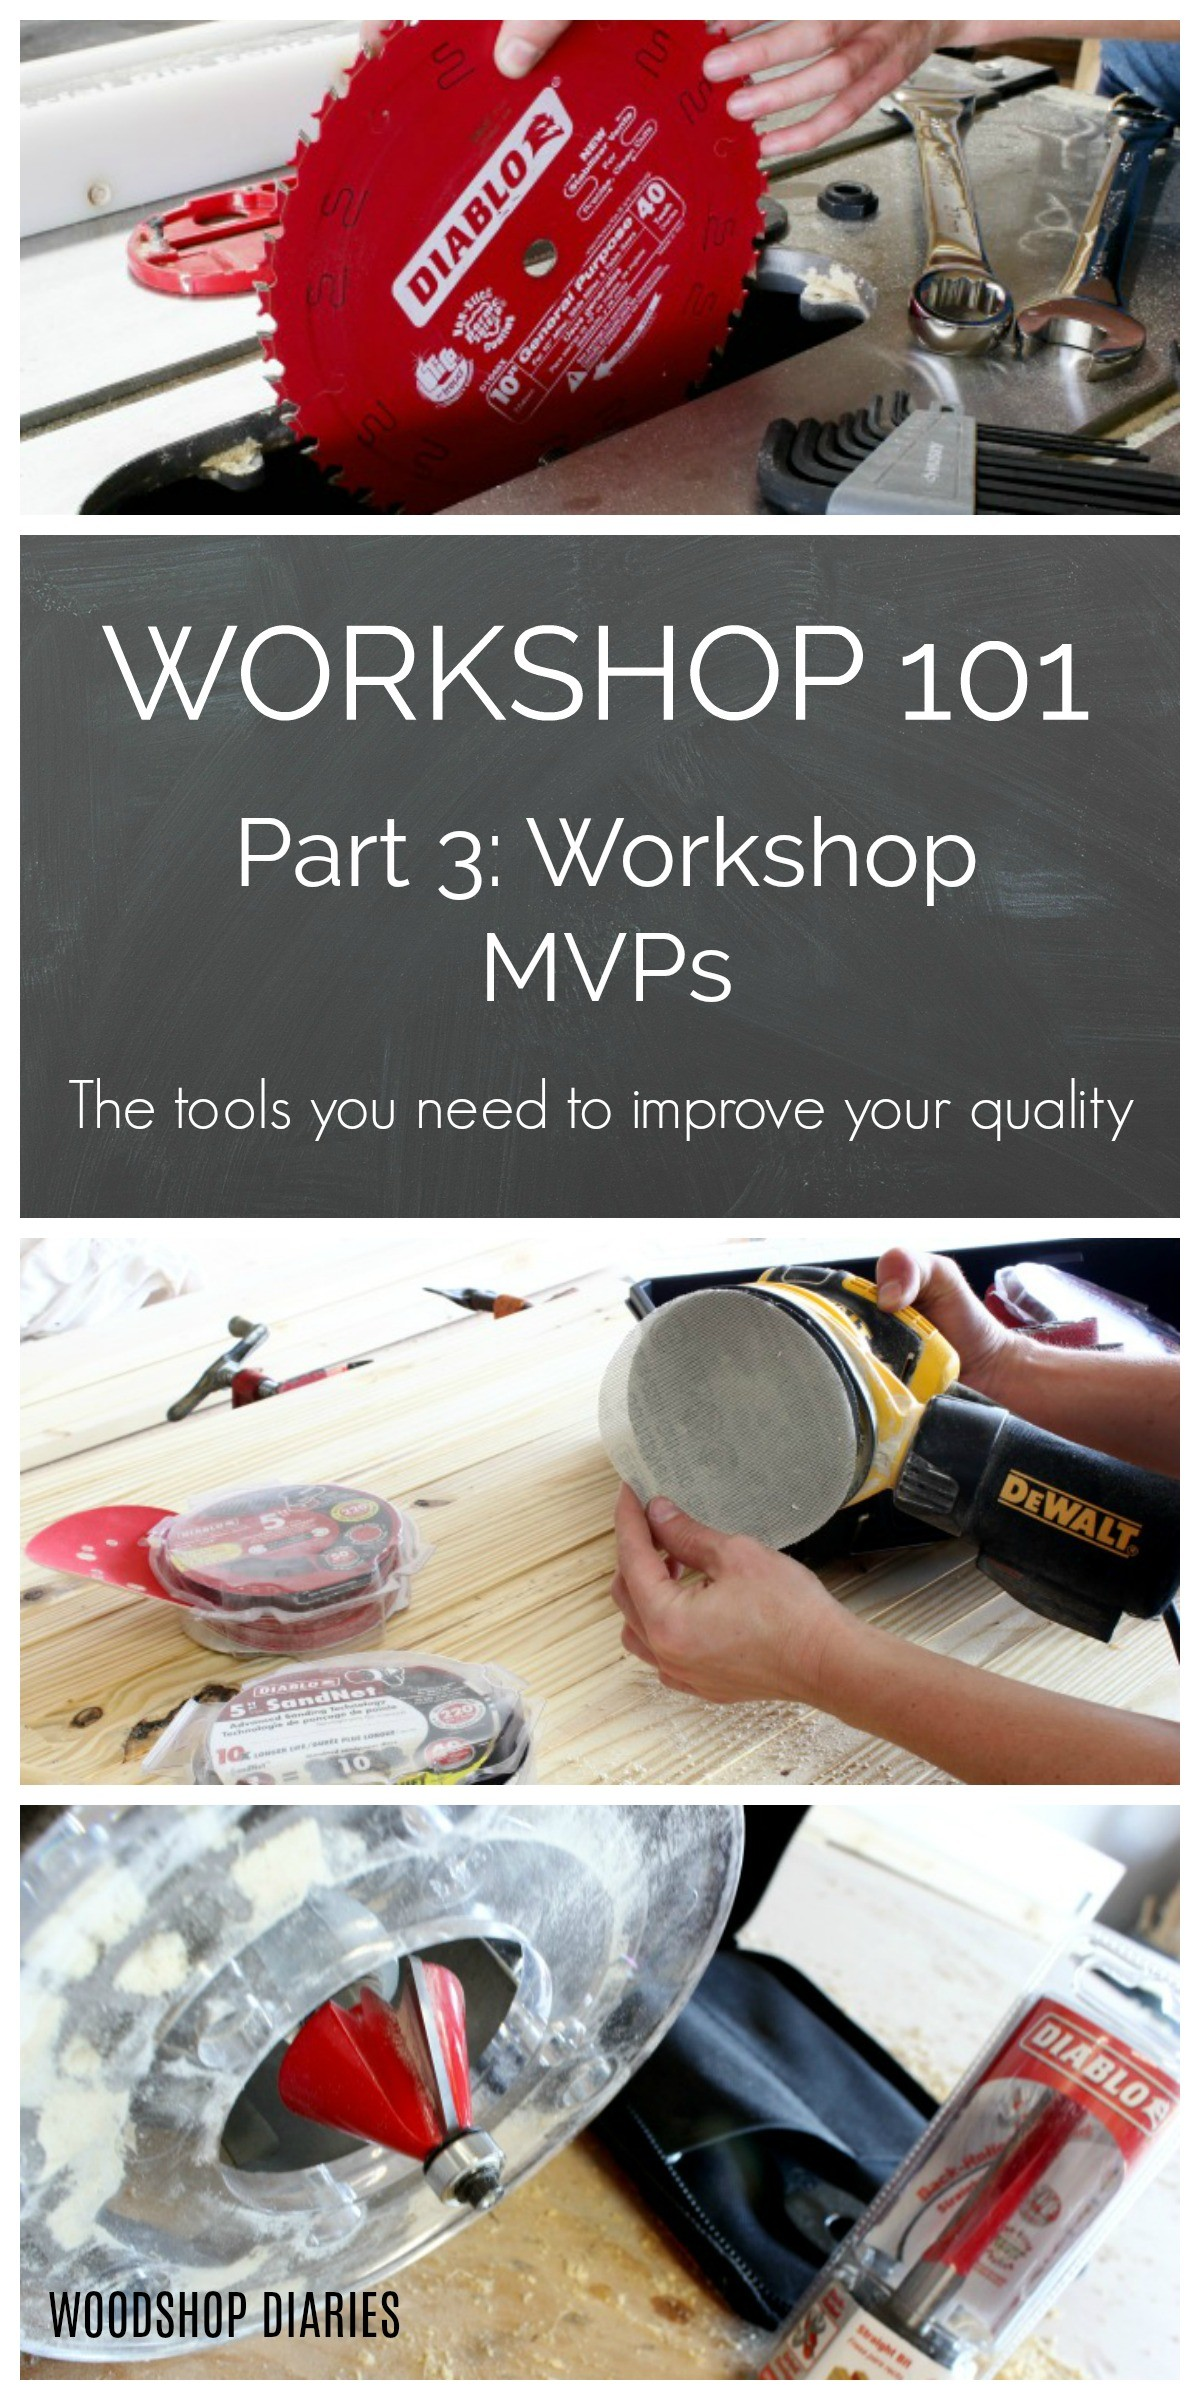 Worshop 101 Part 3--Workshop MVPs and how to improve your craftsmanship with a few simple upgrades